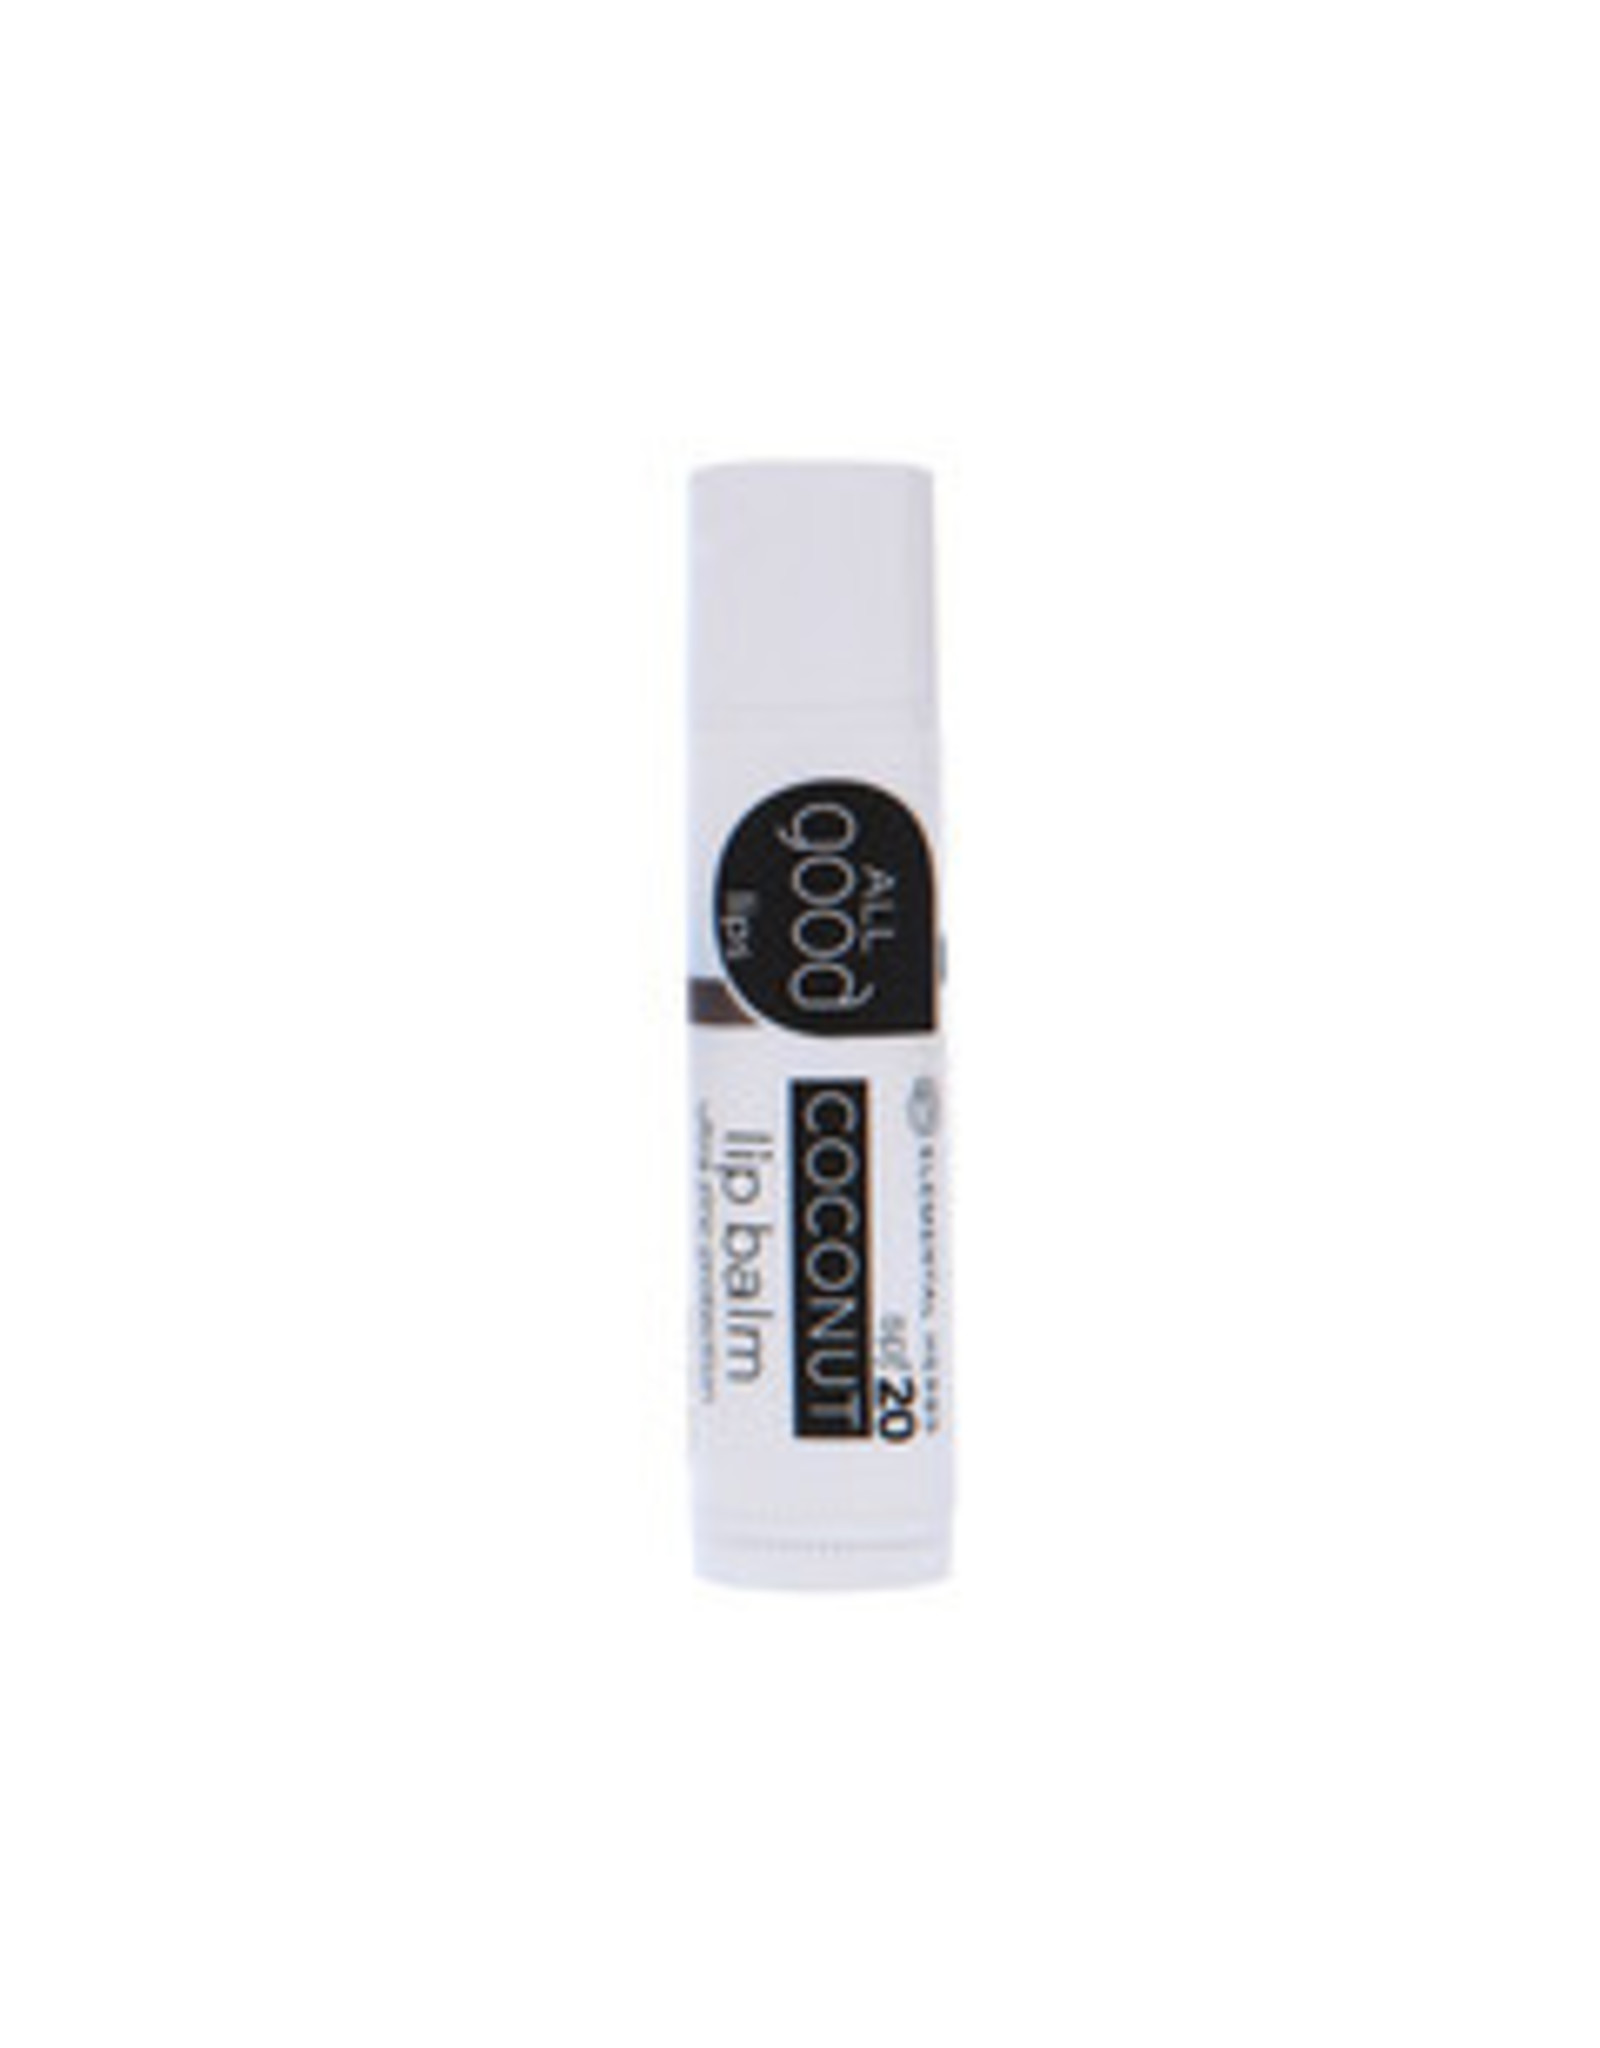 All Good All Good Lip Balm Coconut SPF 20